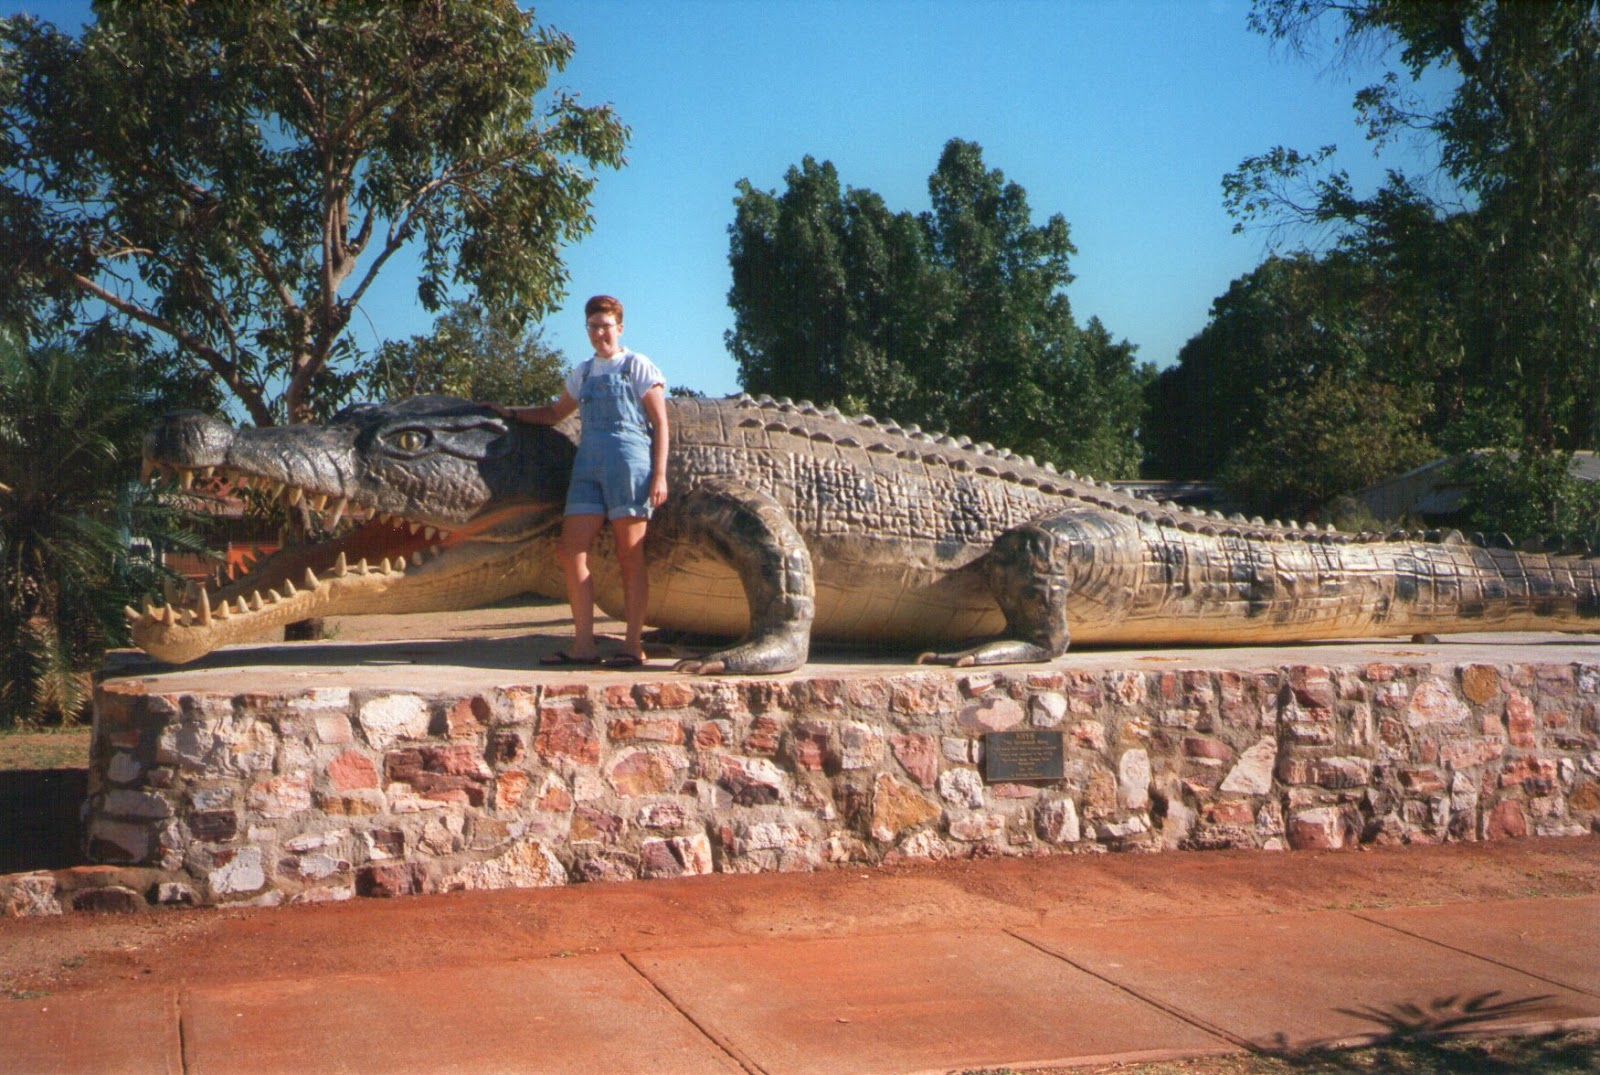 5 Of The Worlds Biggest Crocodile Ever Recorded